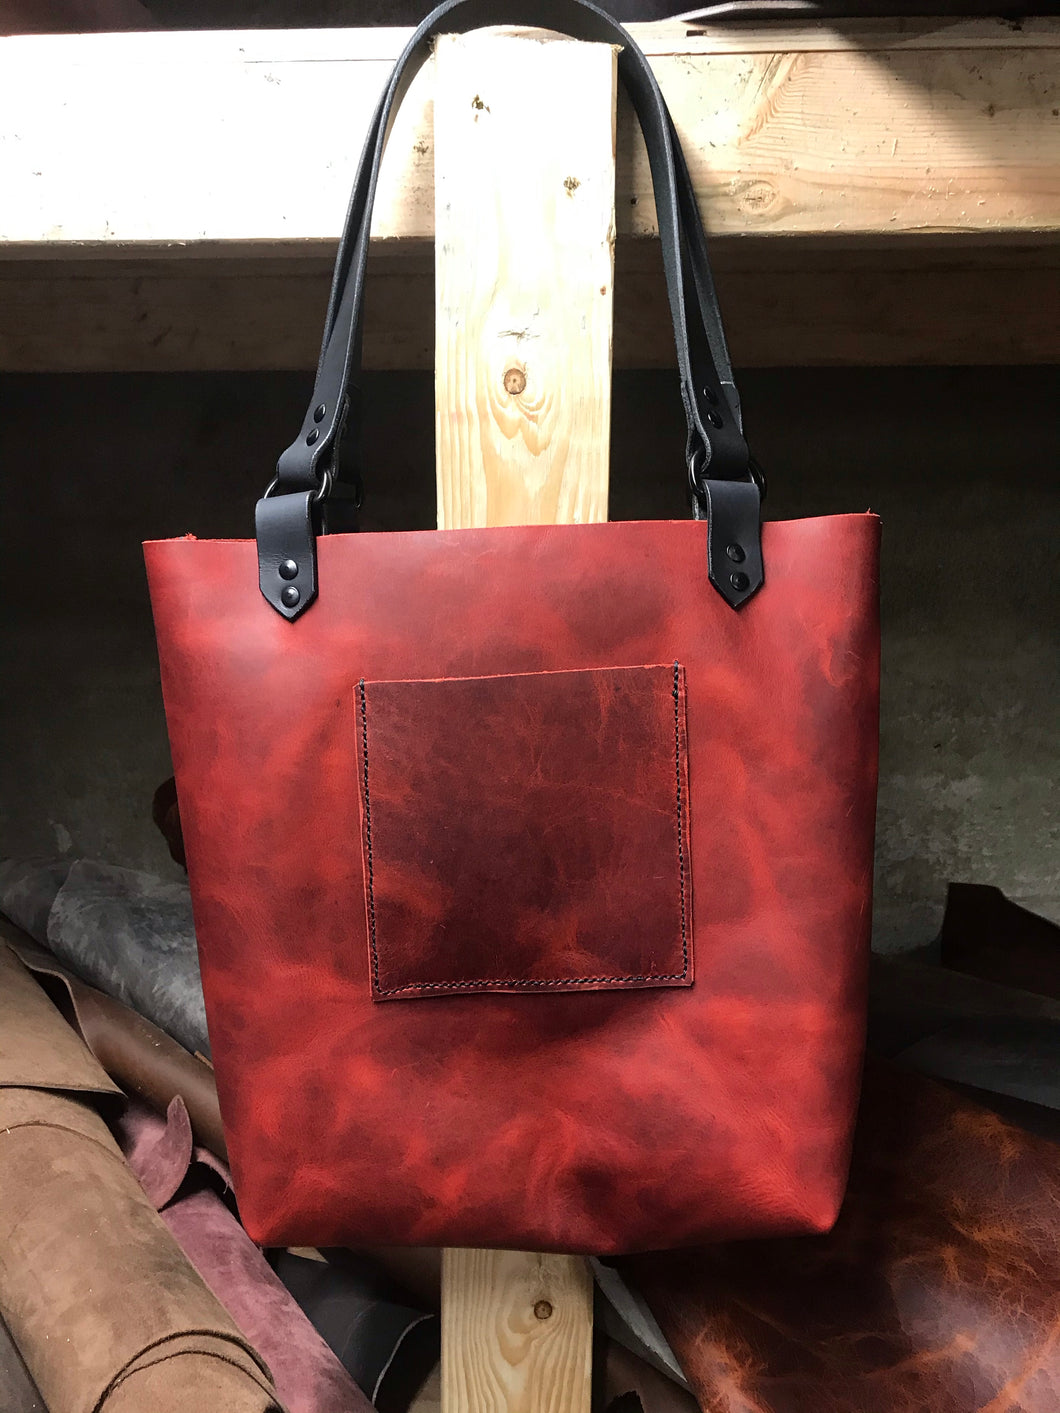 Regular sized tote